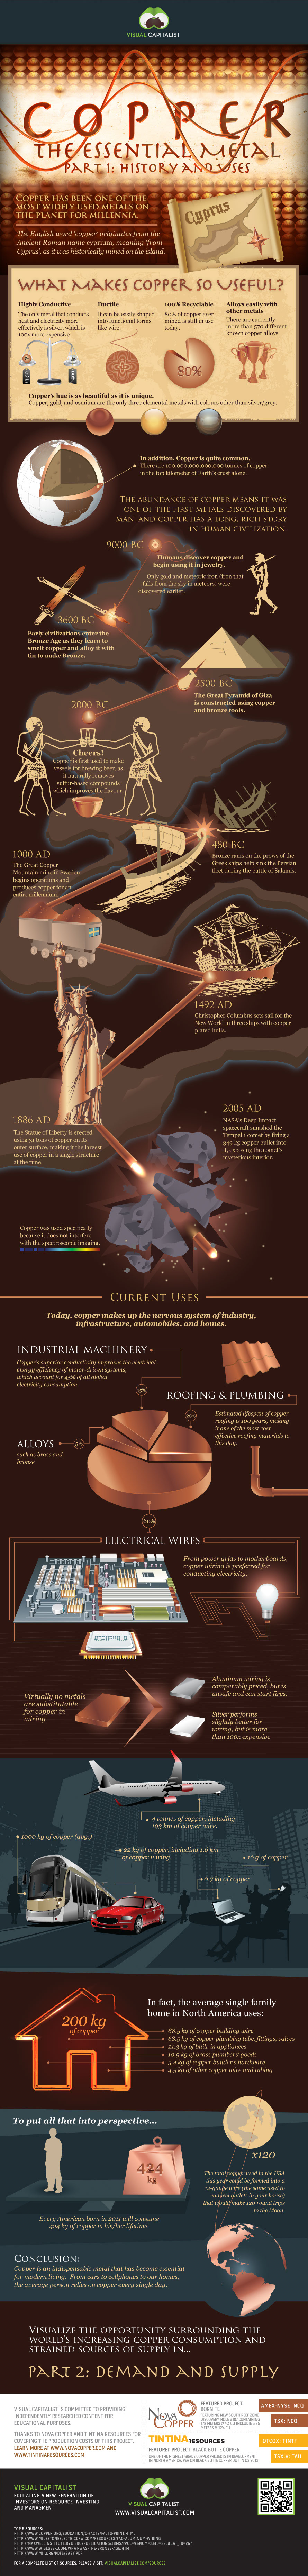 Copper in Historyl-Infographic